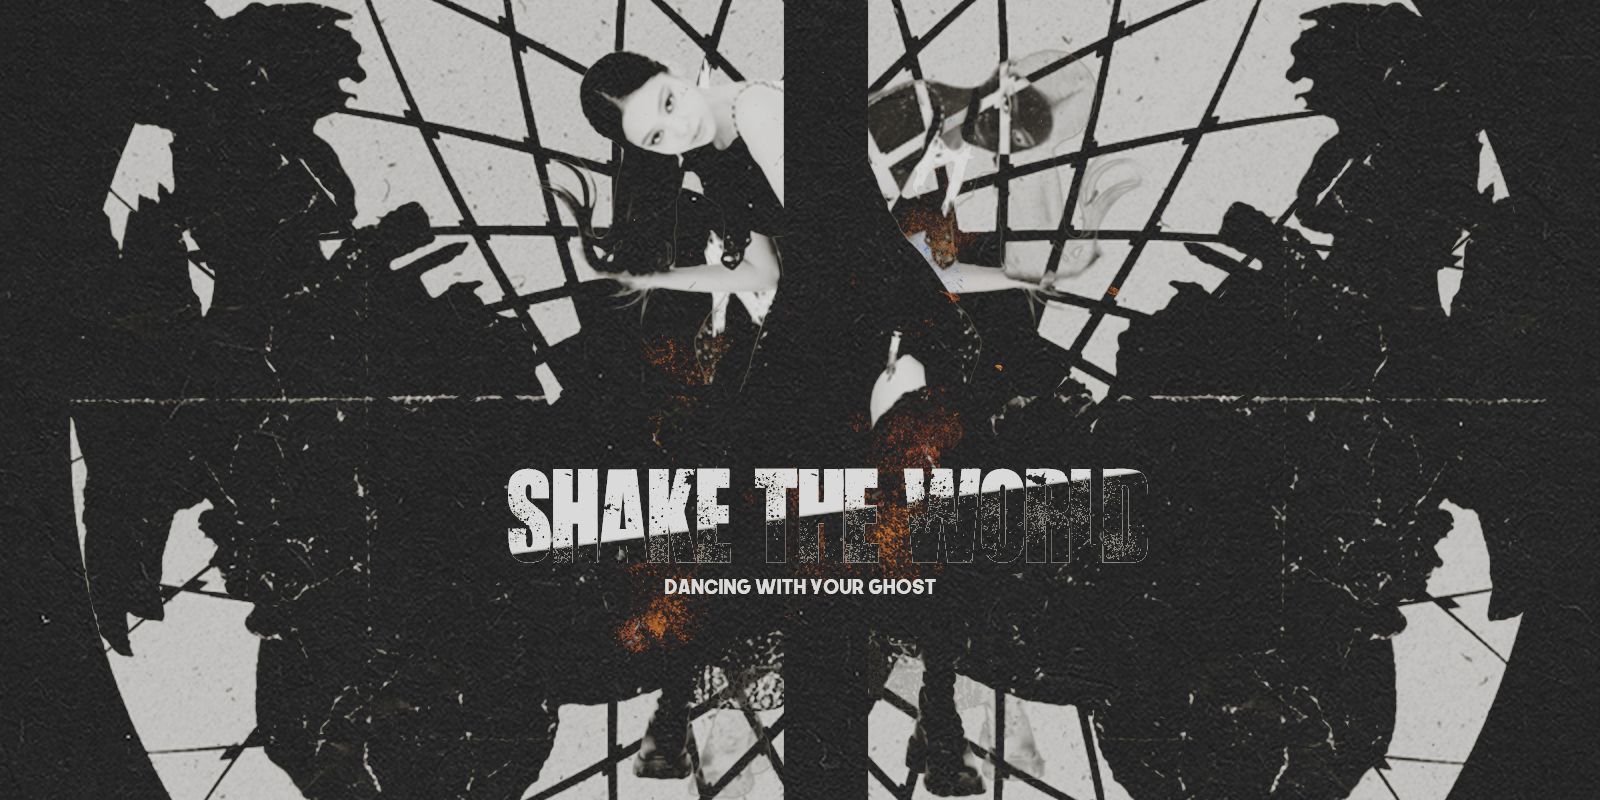 #SHAKE THE WORLD